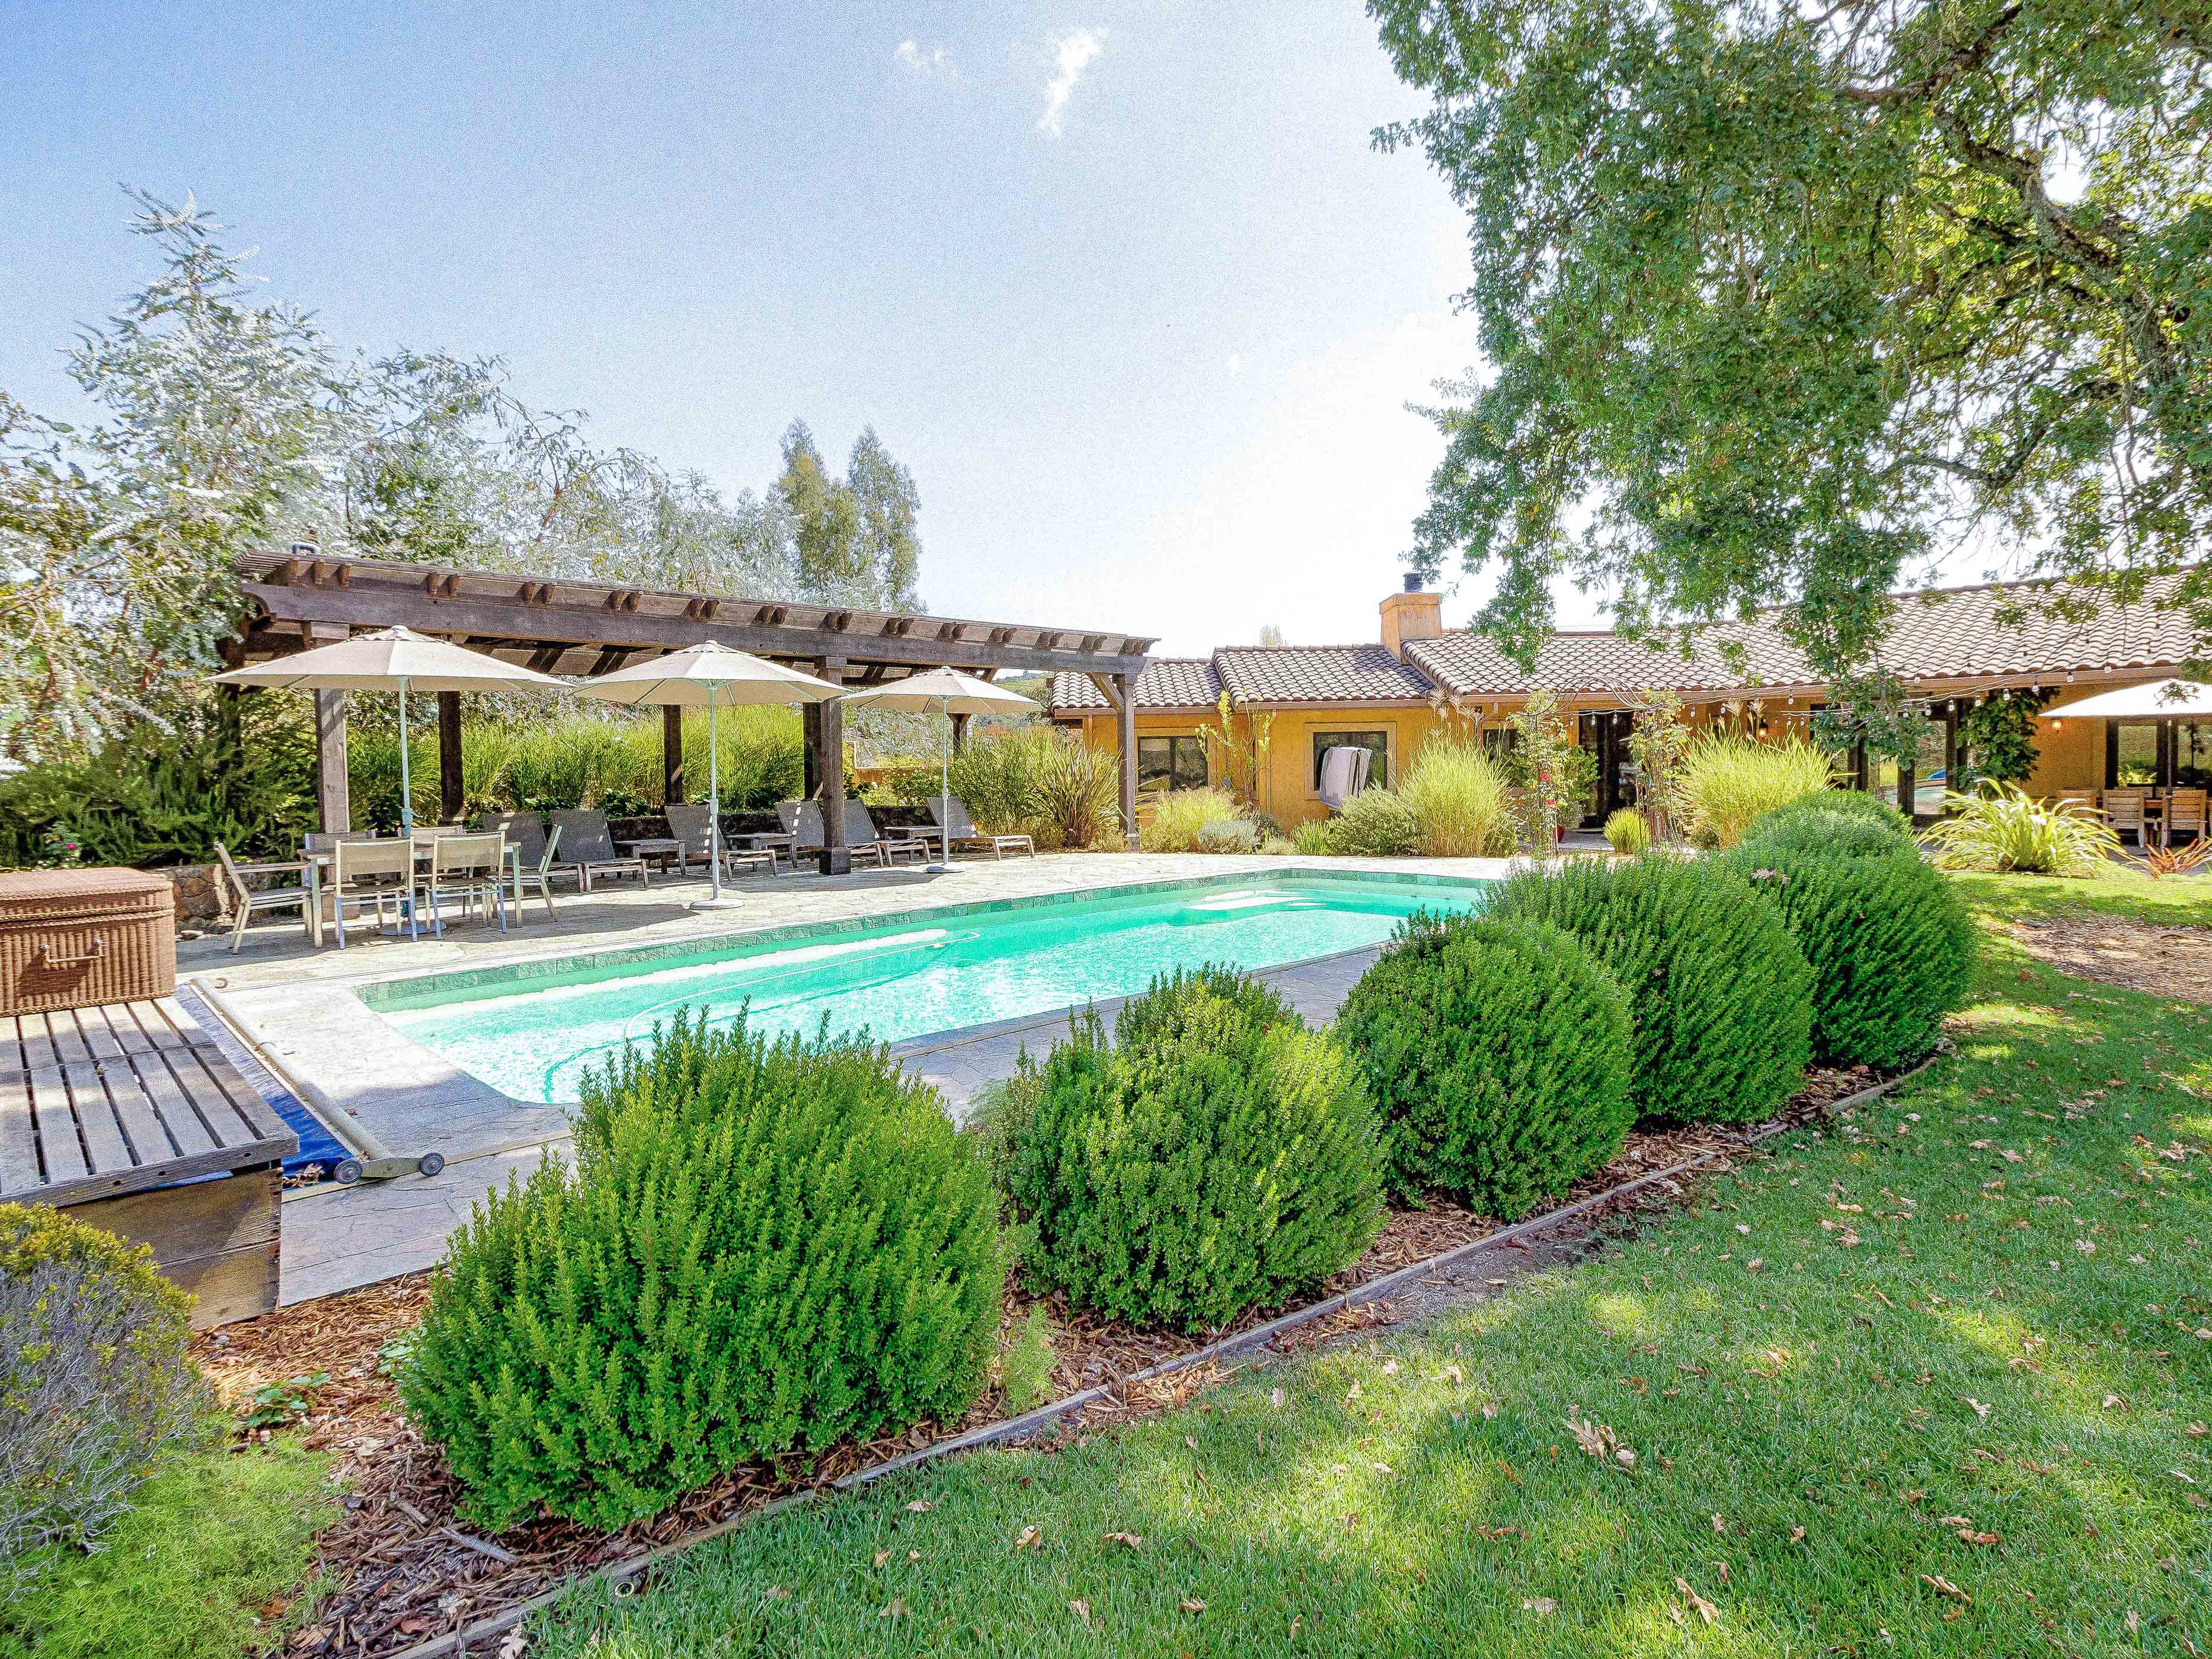 Sonoma CA Vacation Rental This large home